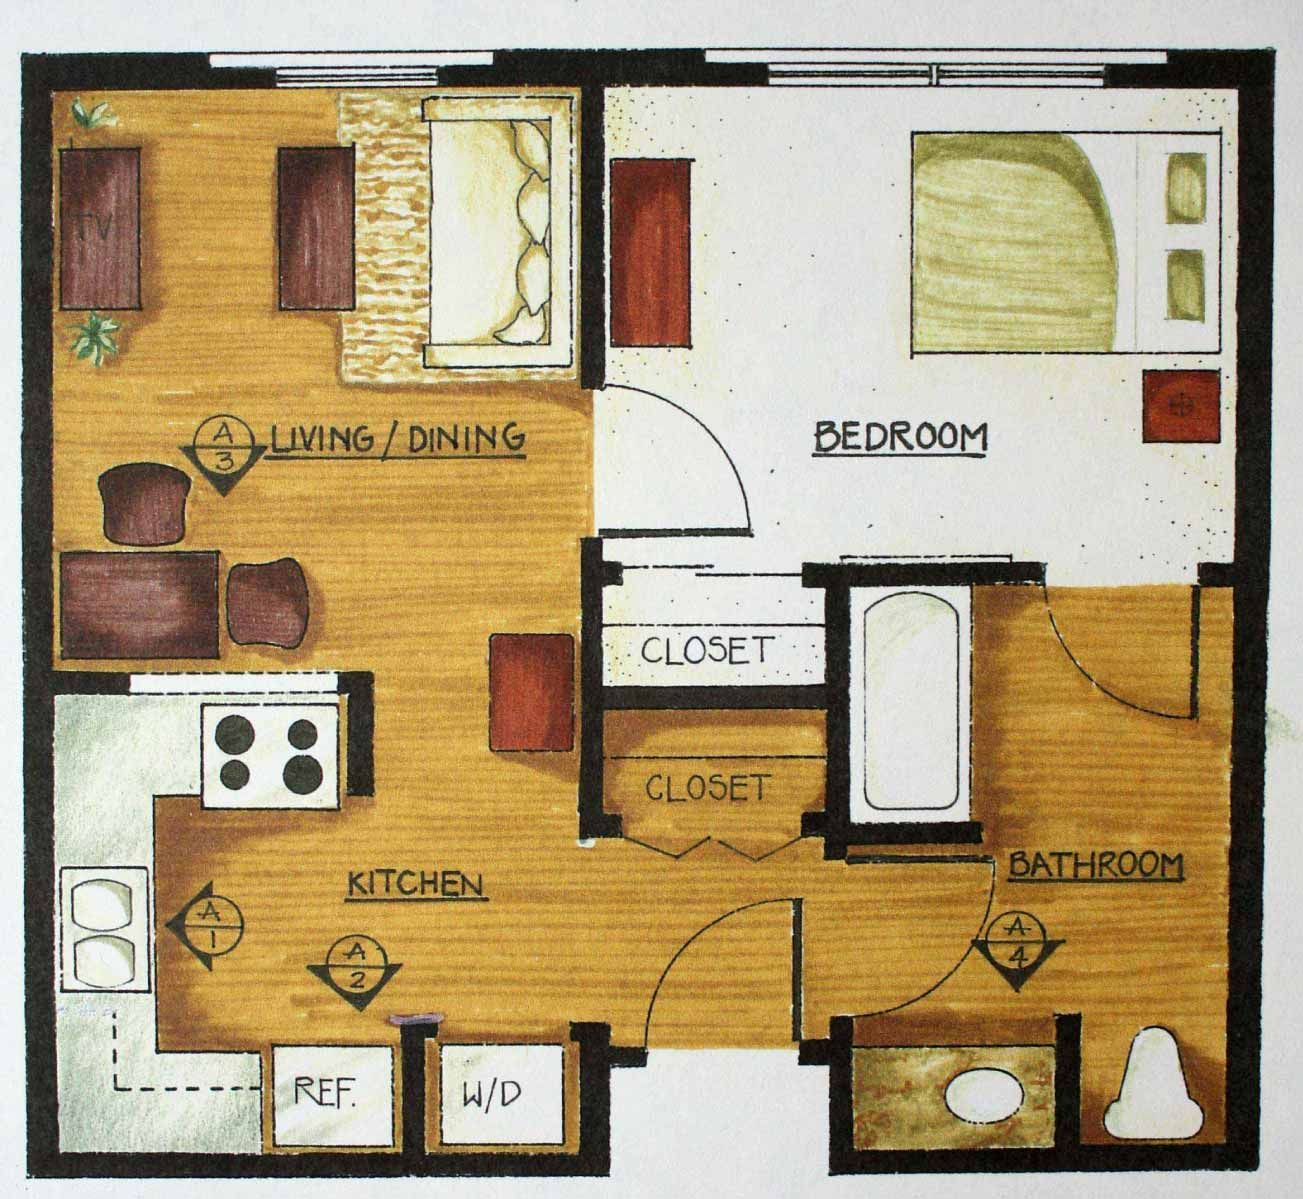 tiny houses floor plans New in raleigh kitchen cabinets Home Decorating